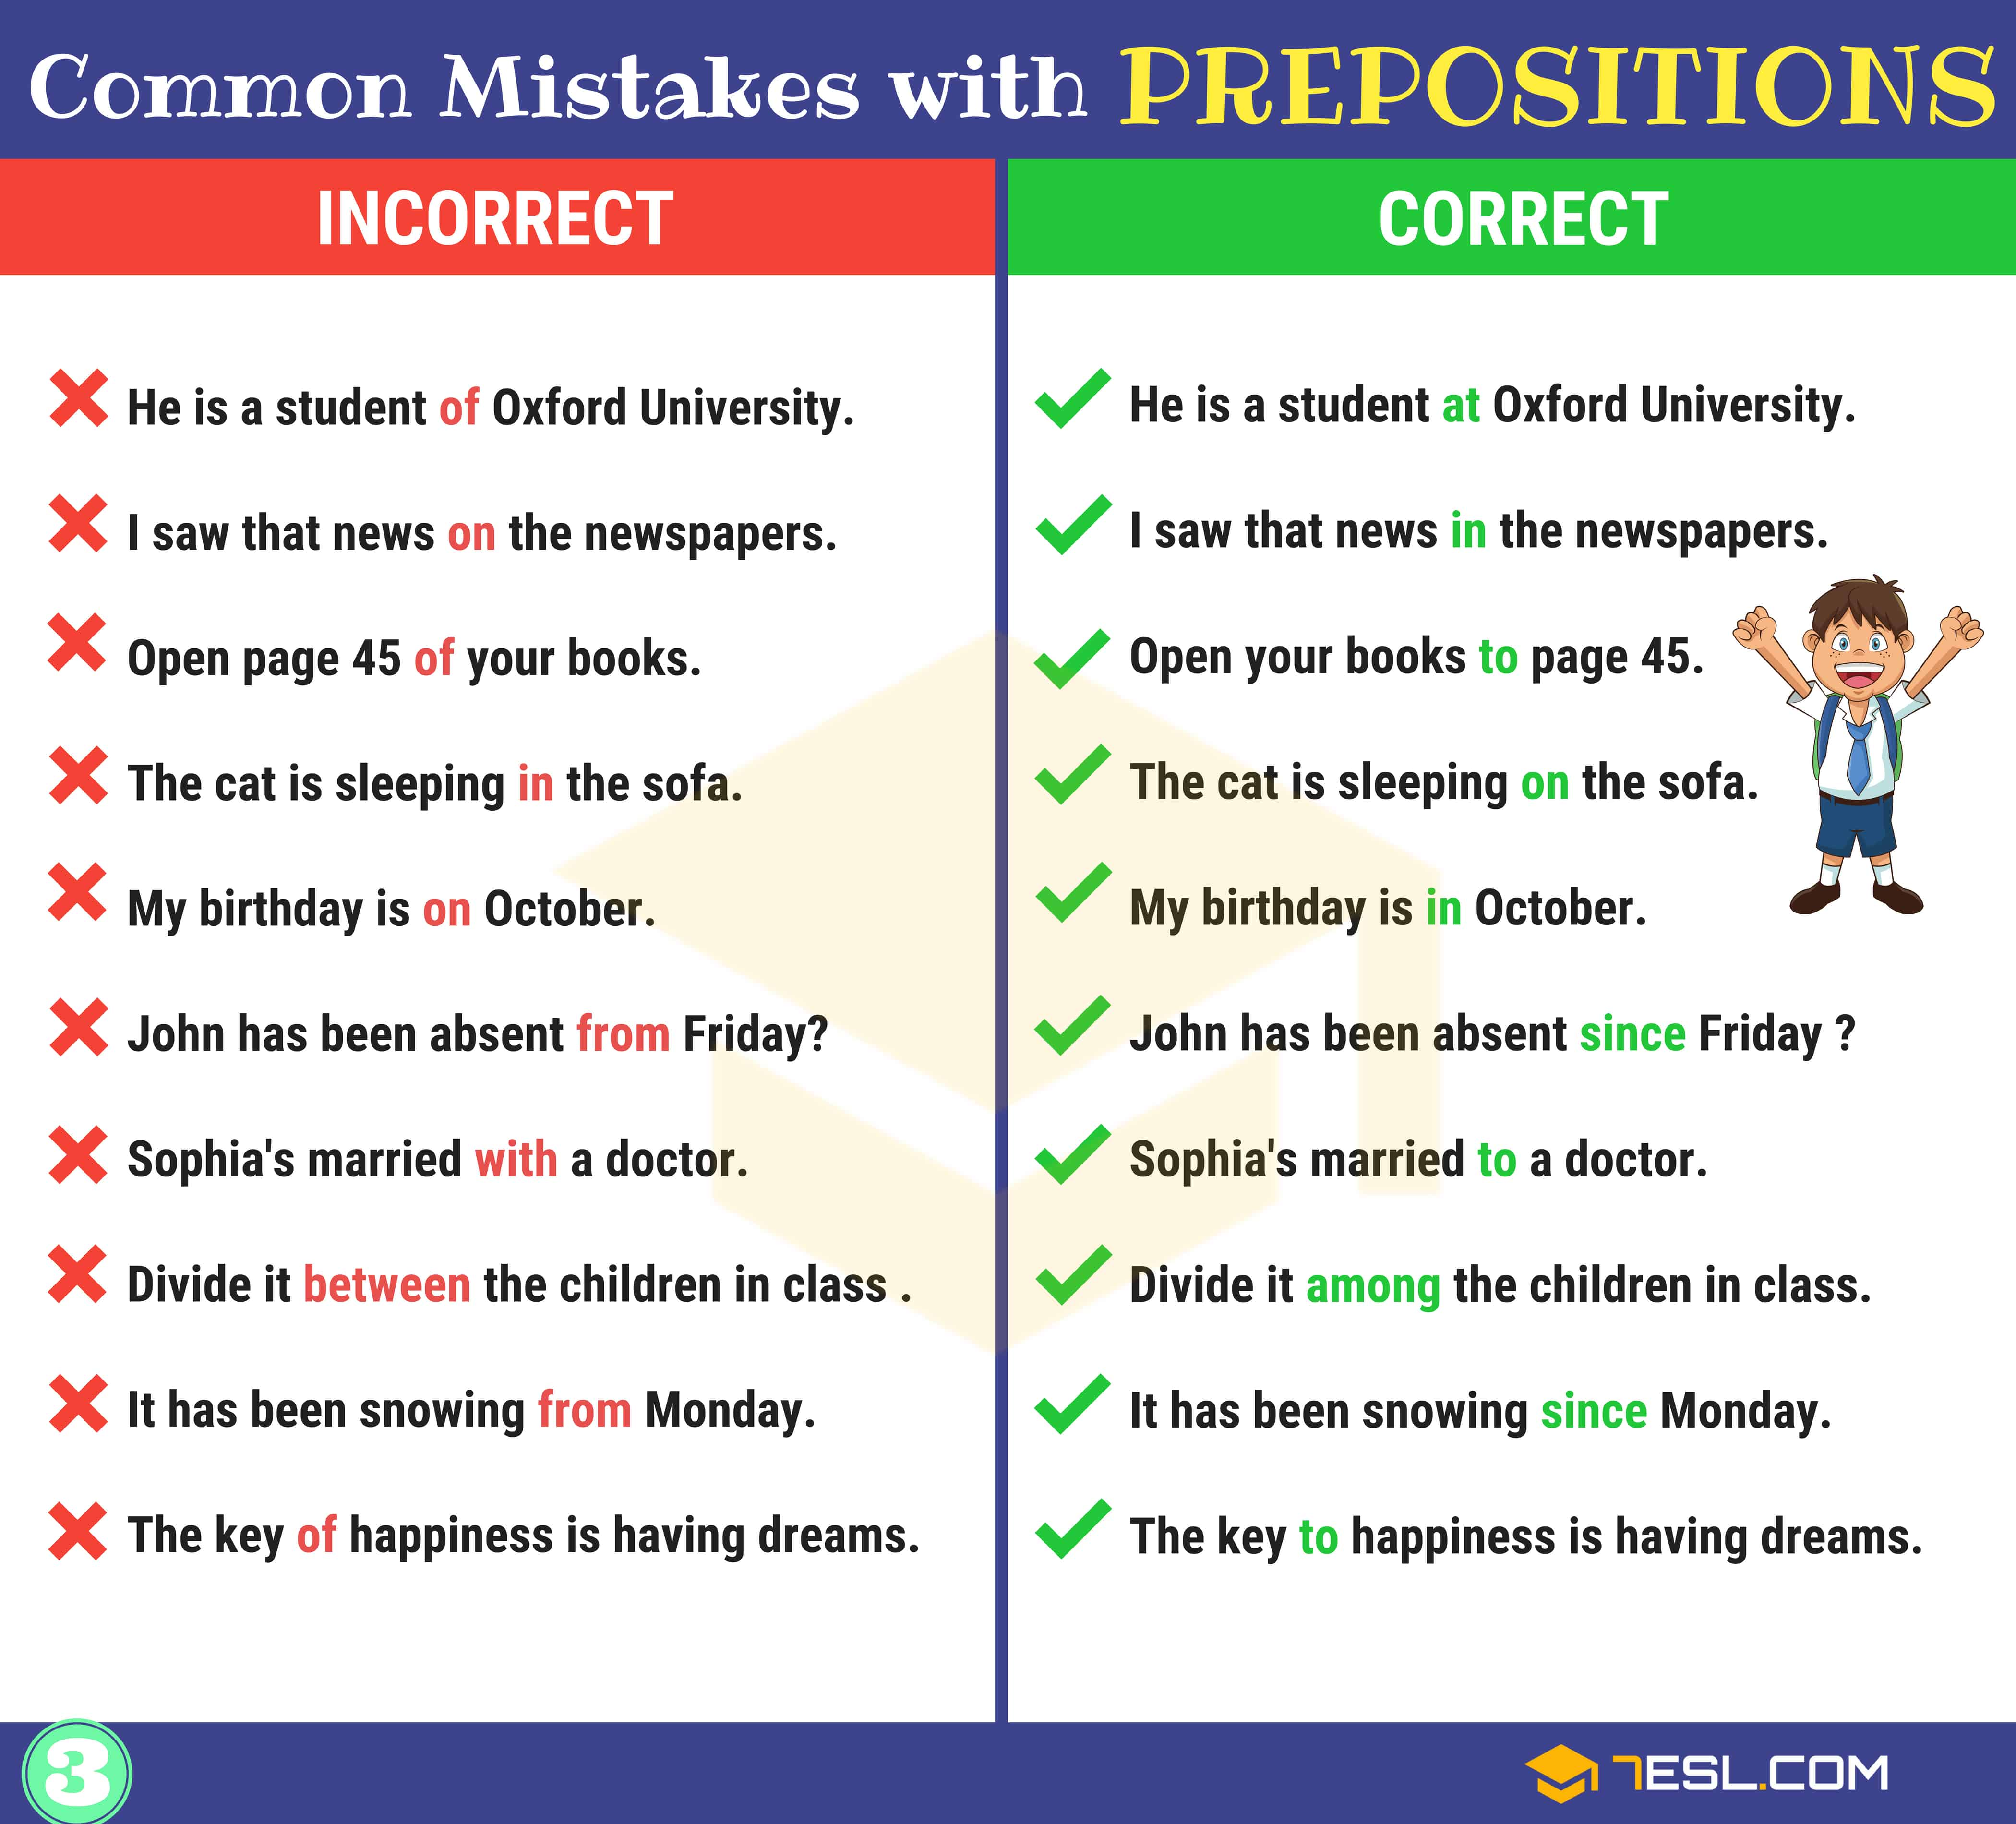 130+ Common MISTAKES With PREPOSITIONS And How To Avoid Them 4